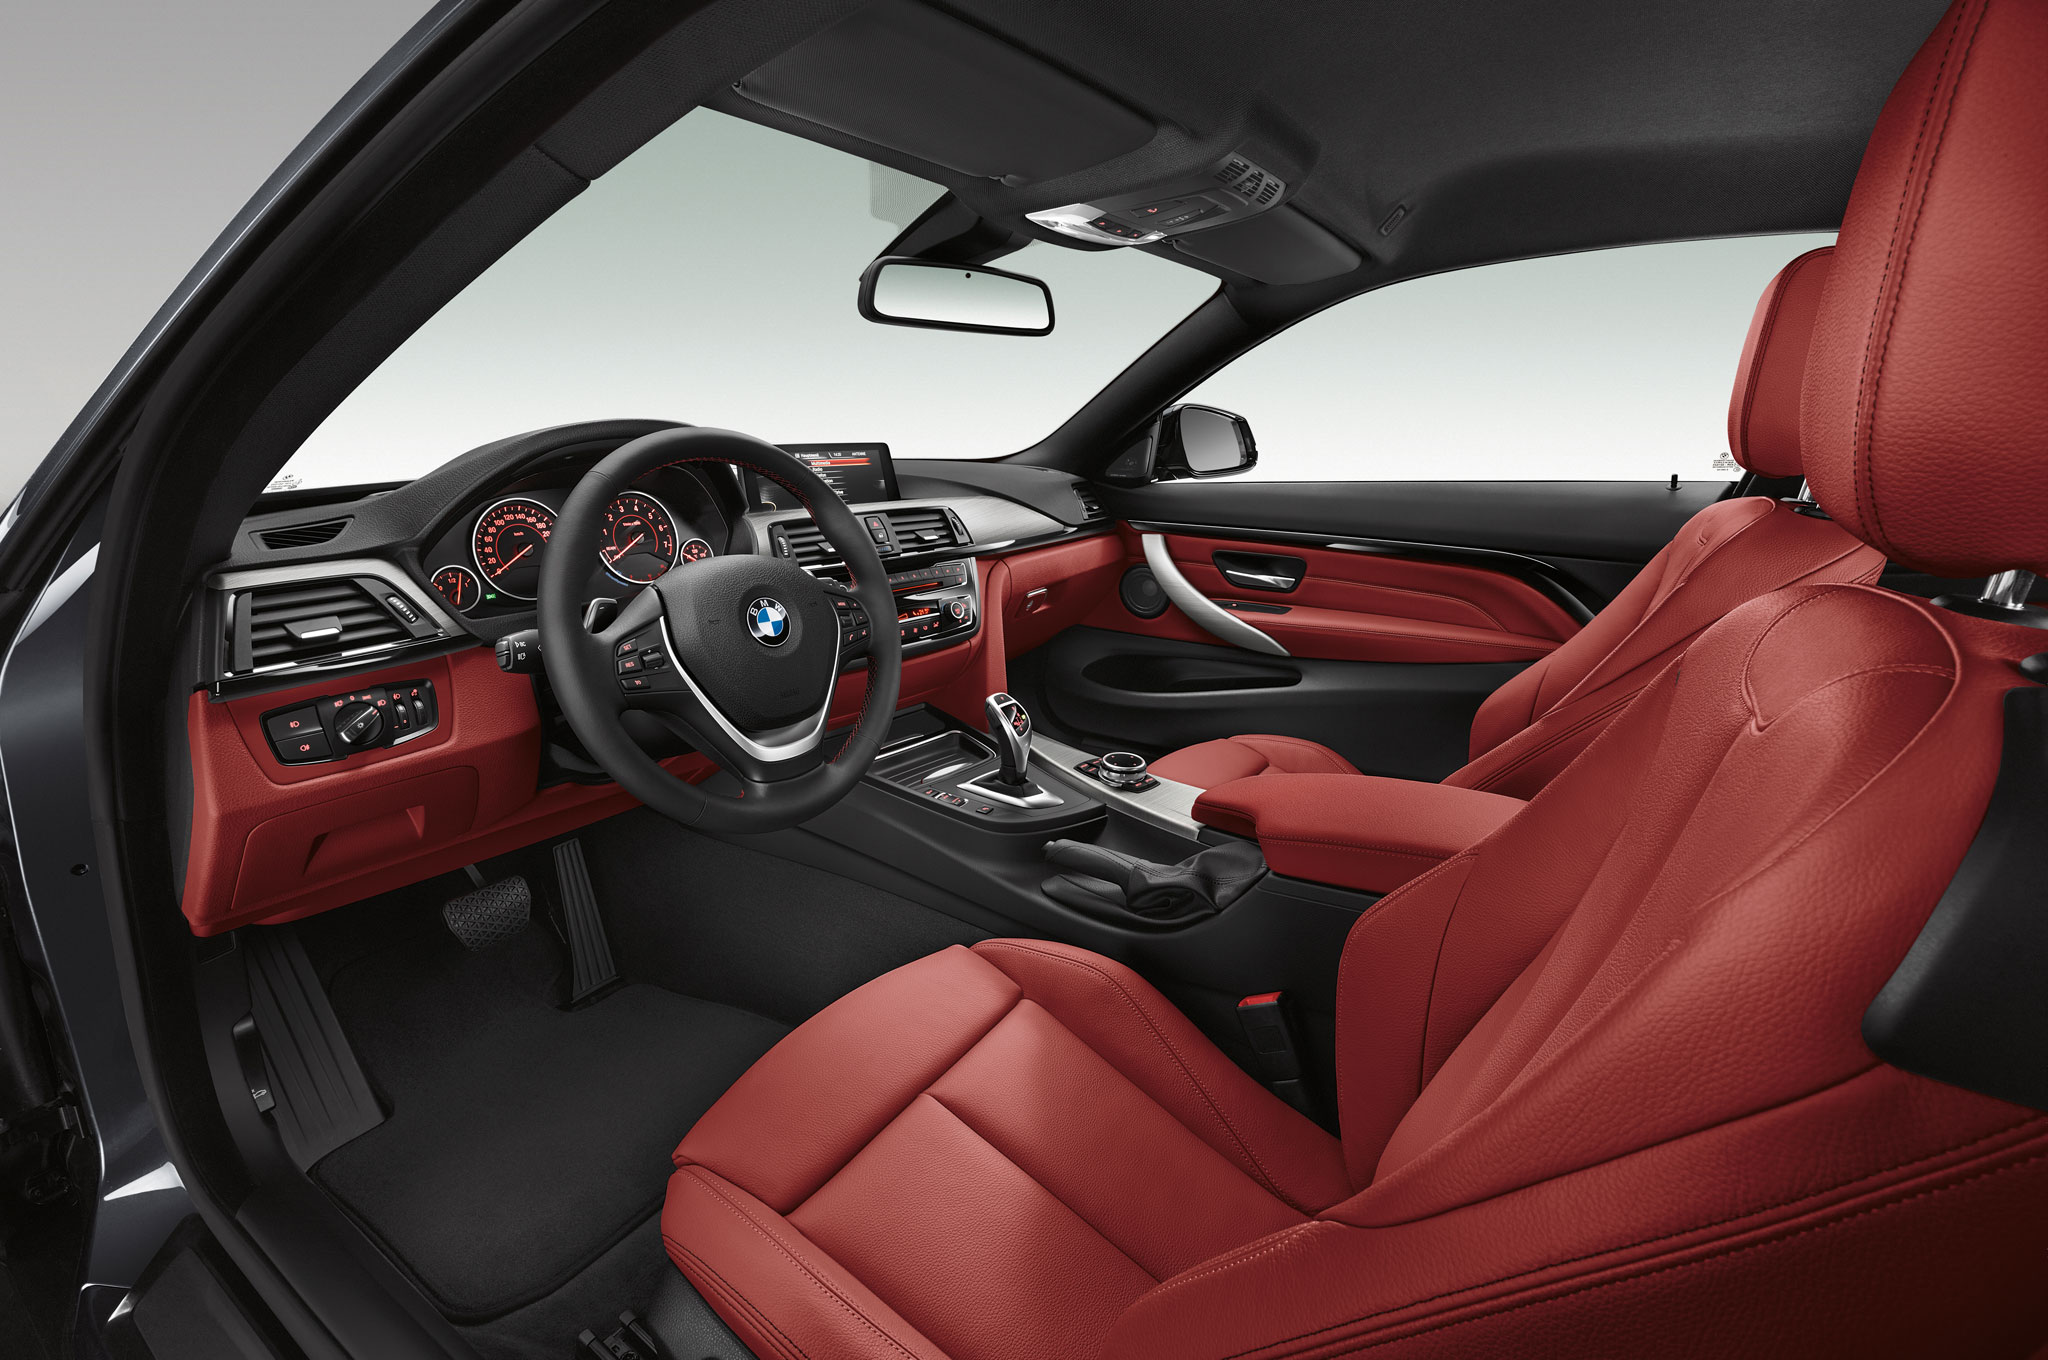 The New 2014 BMW 4 Series